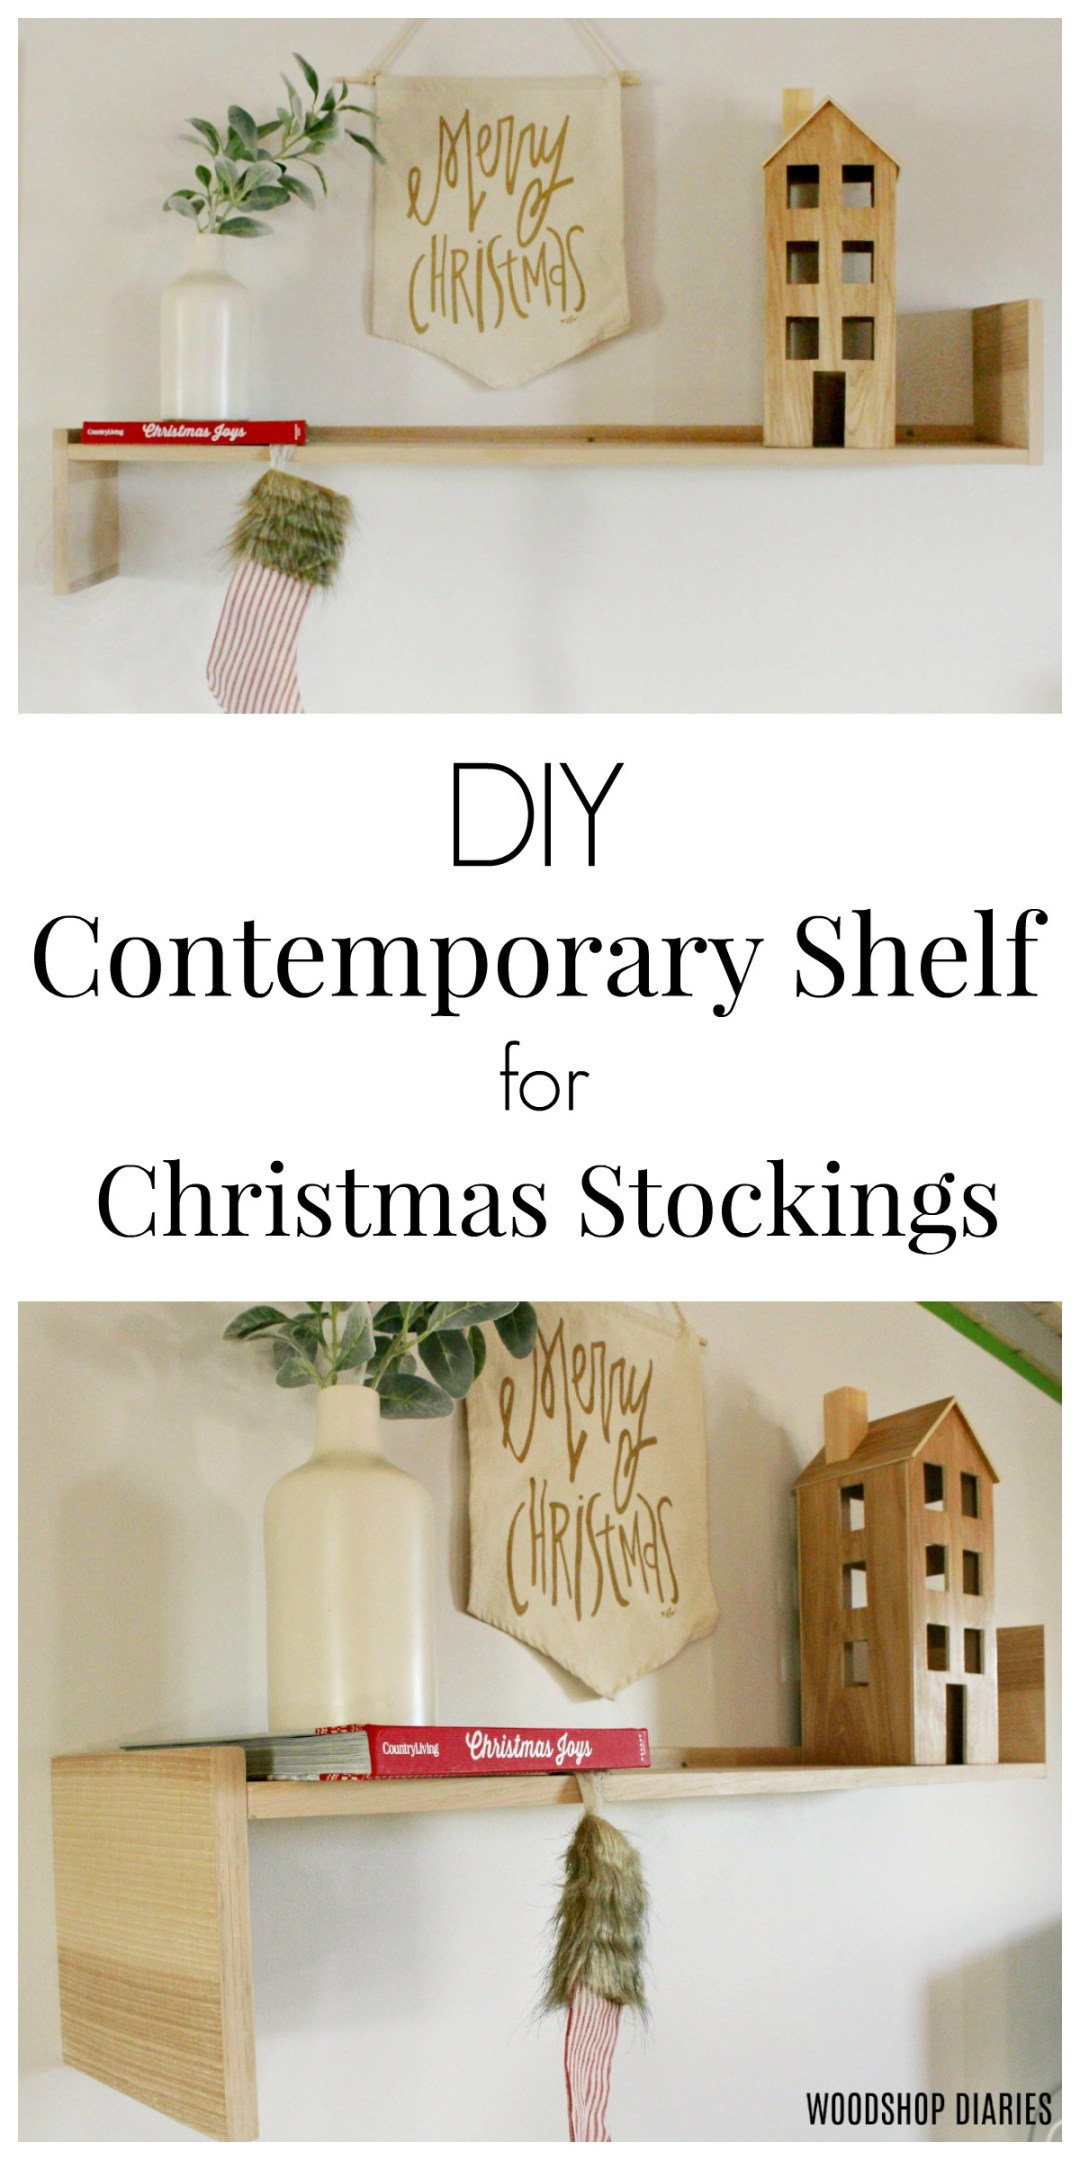 DIY Contemporary Shelf used as a Christmas Stocking Holder and place to display Christmas village